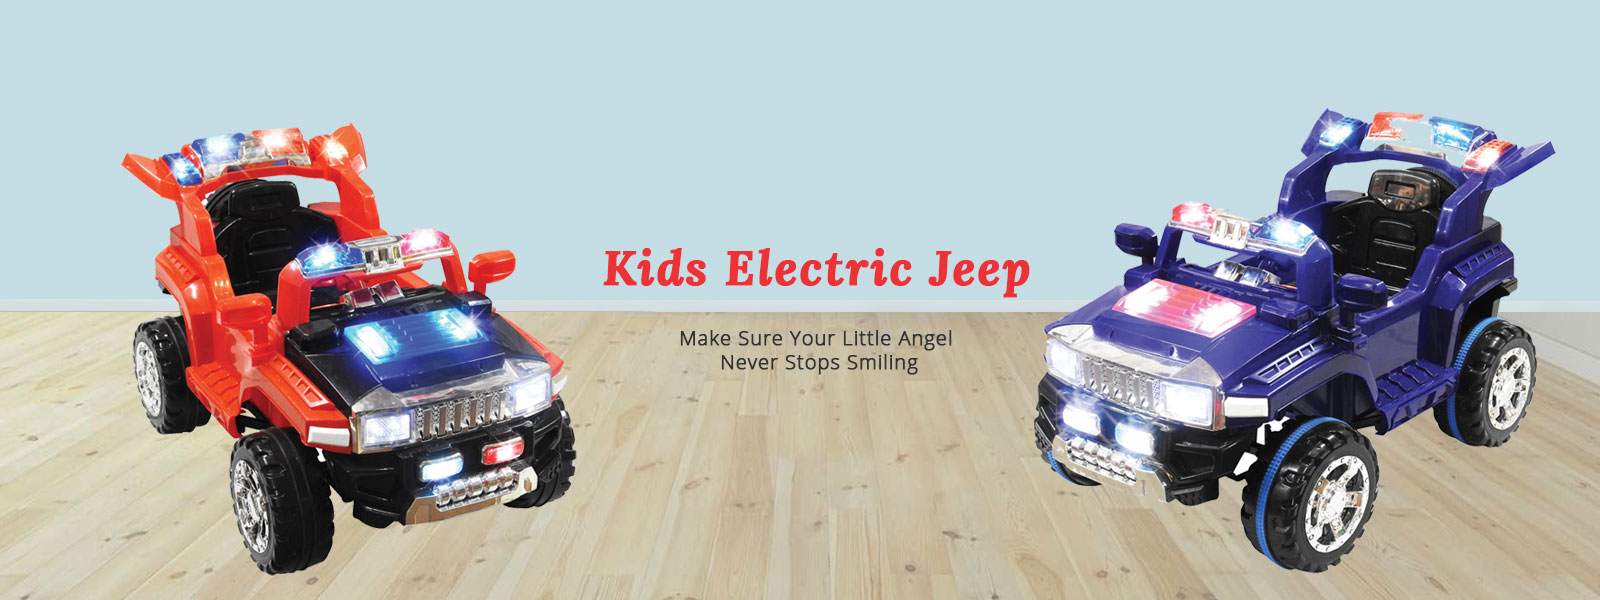 Kids Electric Jeep Manufacturers in Jammu